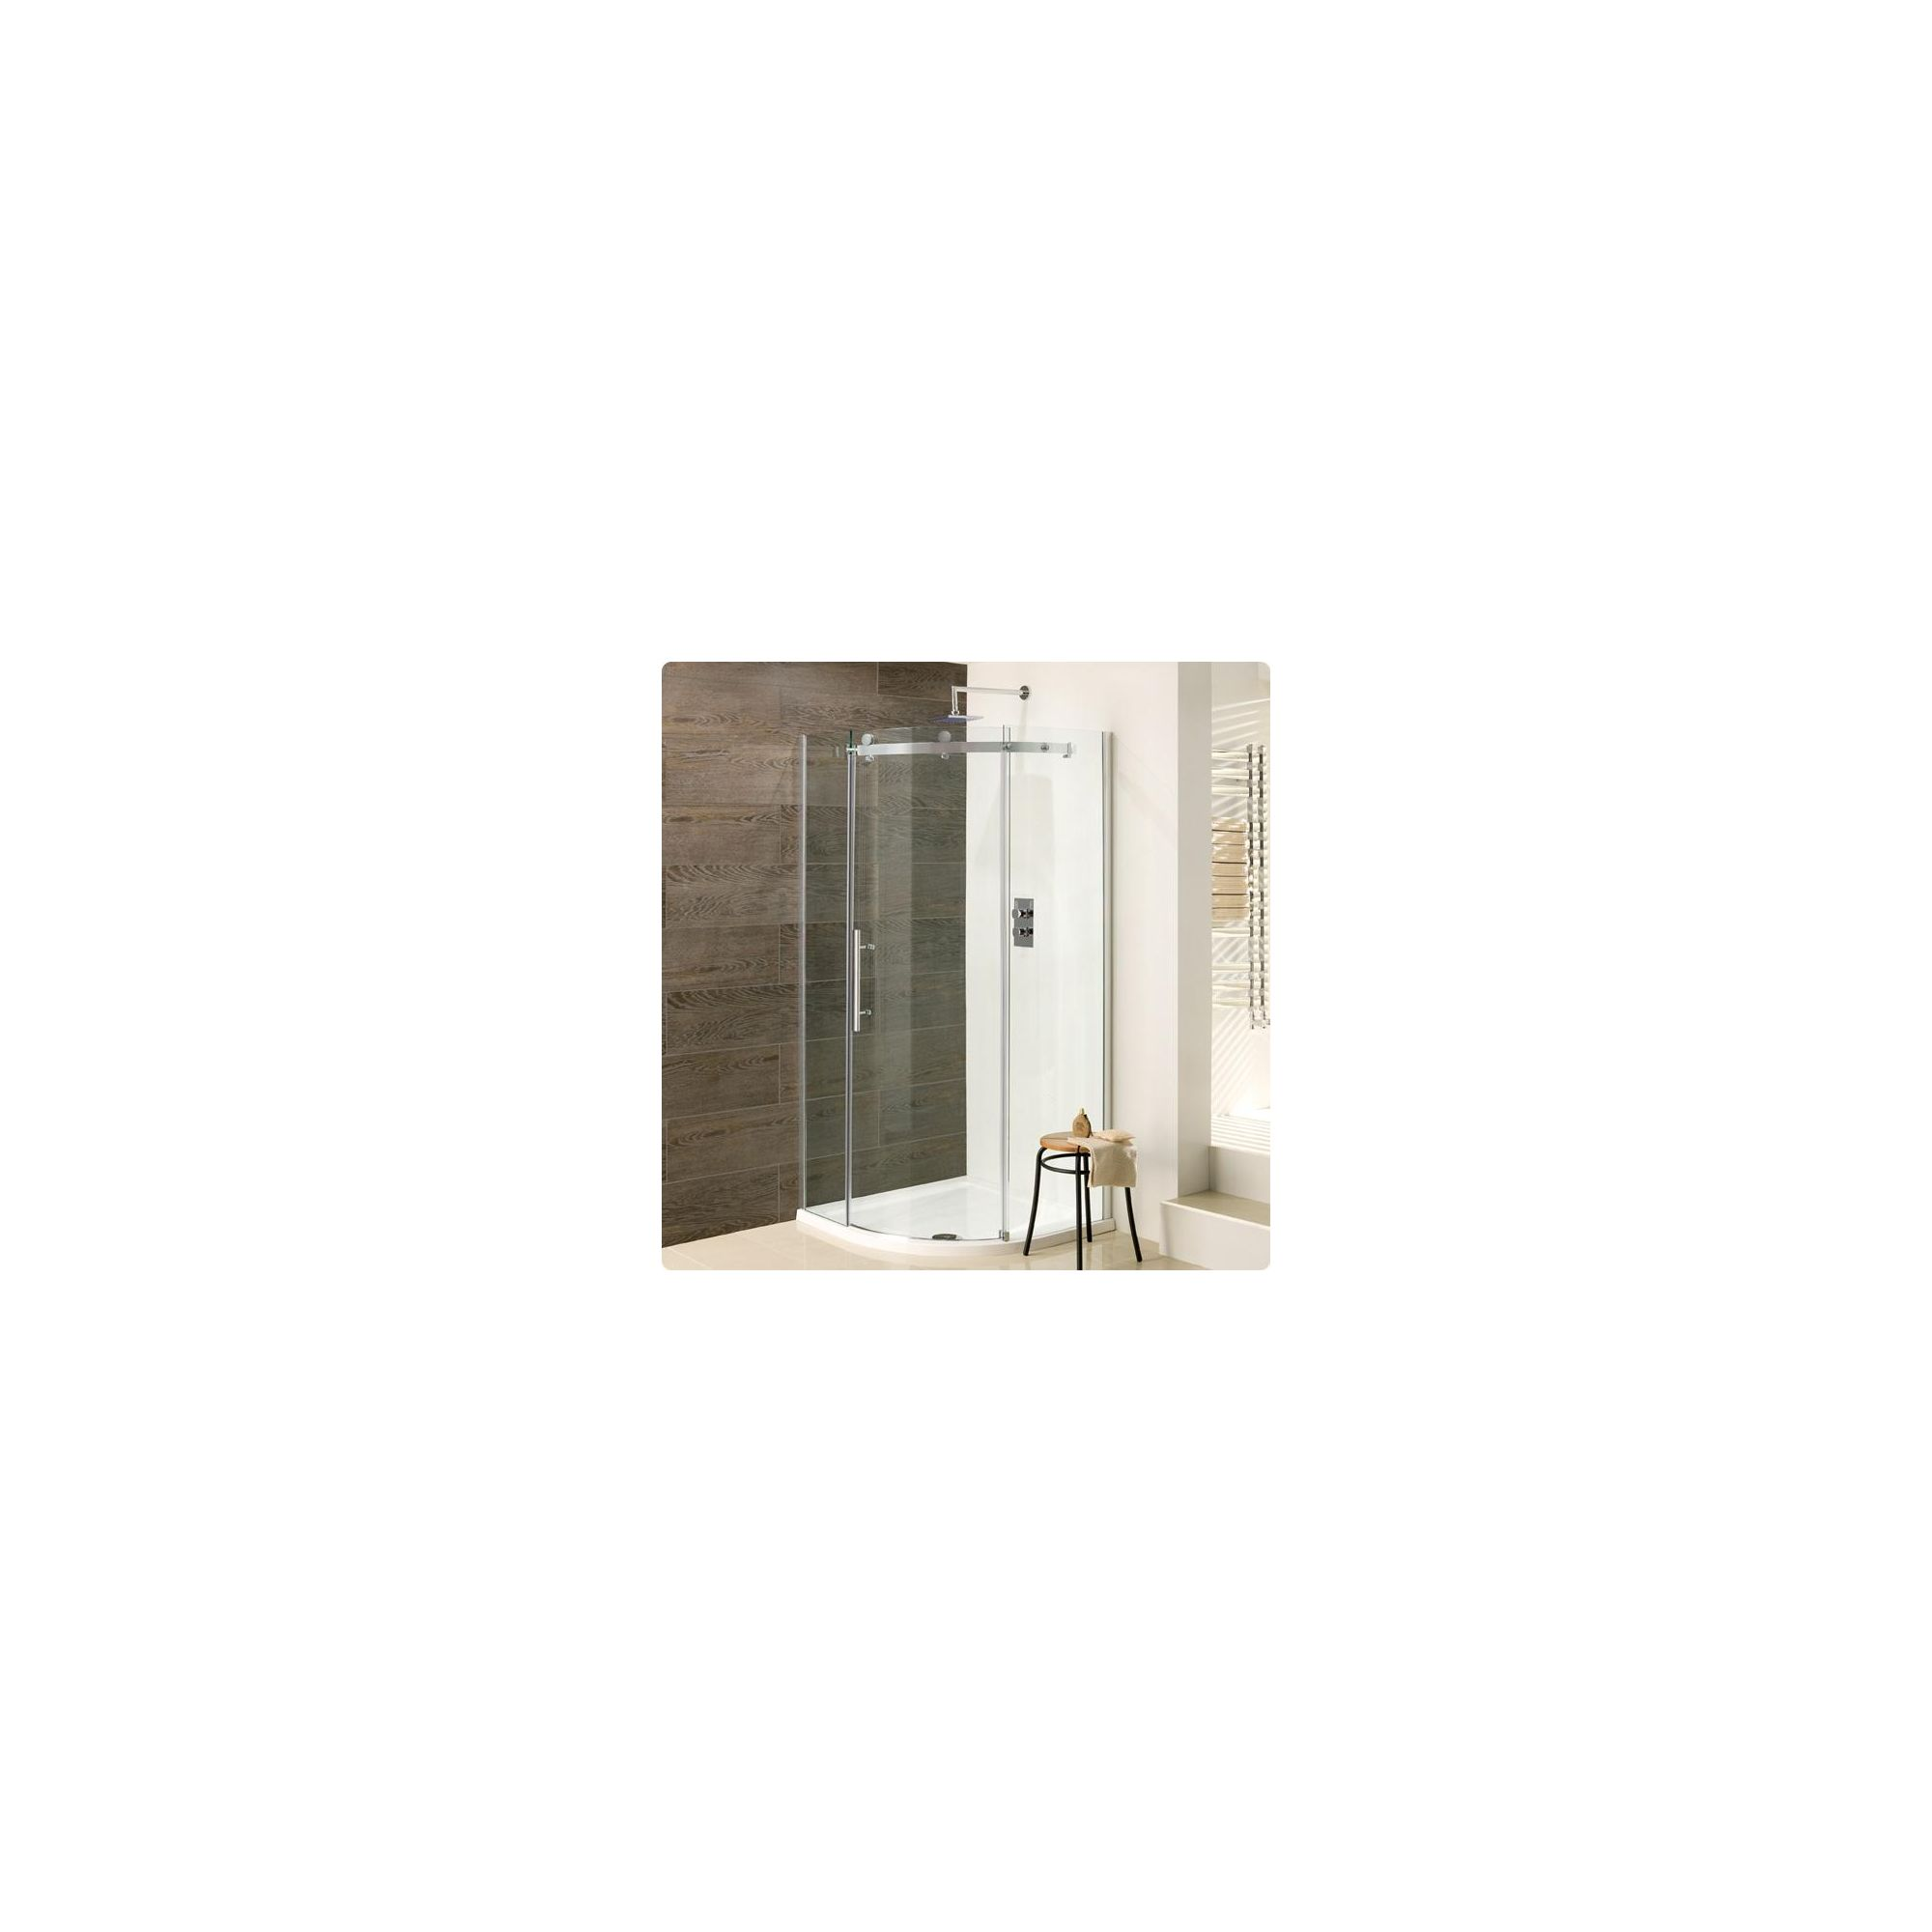 Duchy Deluxe Silver Quadrant Shower Enclosure 800mm (Complete with Tray), 10mm Glass at Tescos Direct